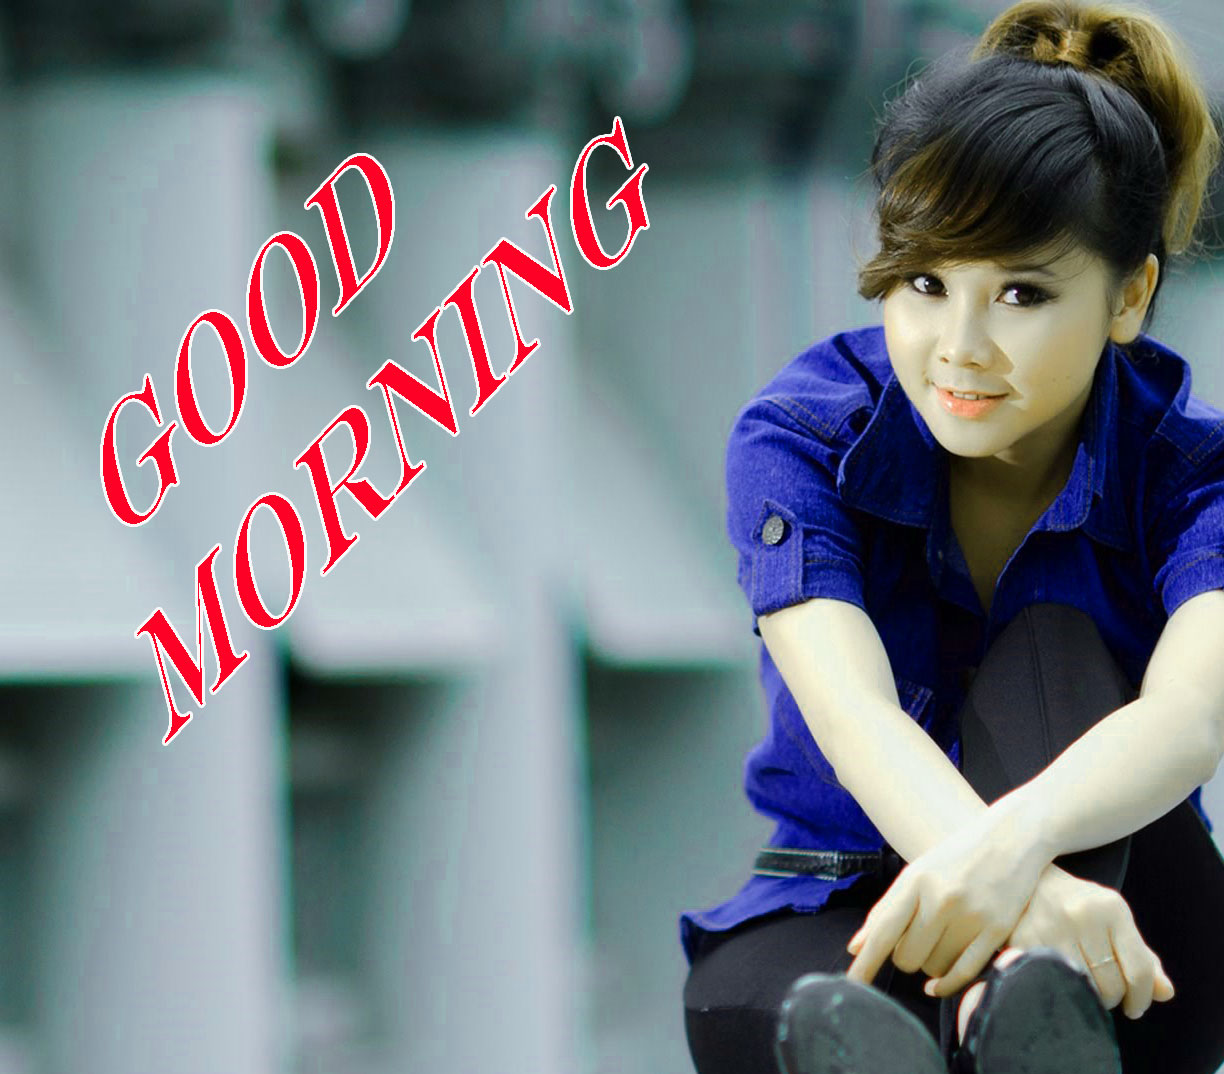 GOOD MORNING WITH BEAUTIFUL DESI CUTE STYLISH IMAGES PICS WALLPAPER DOWNLOAD